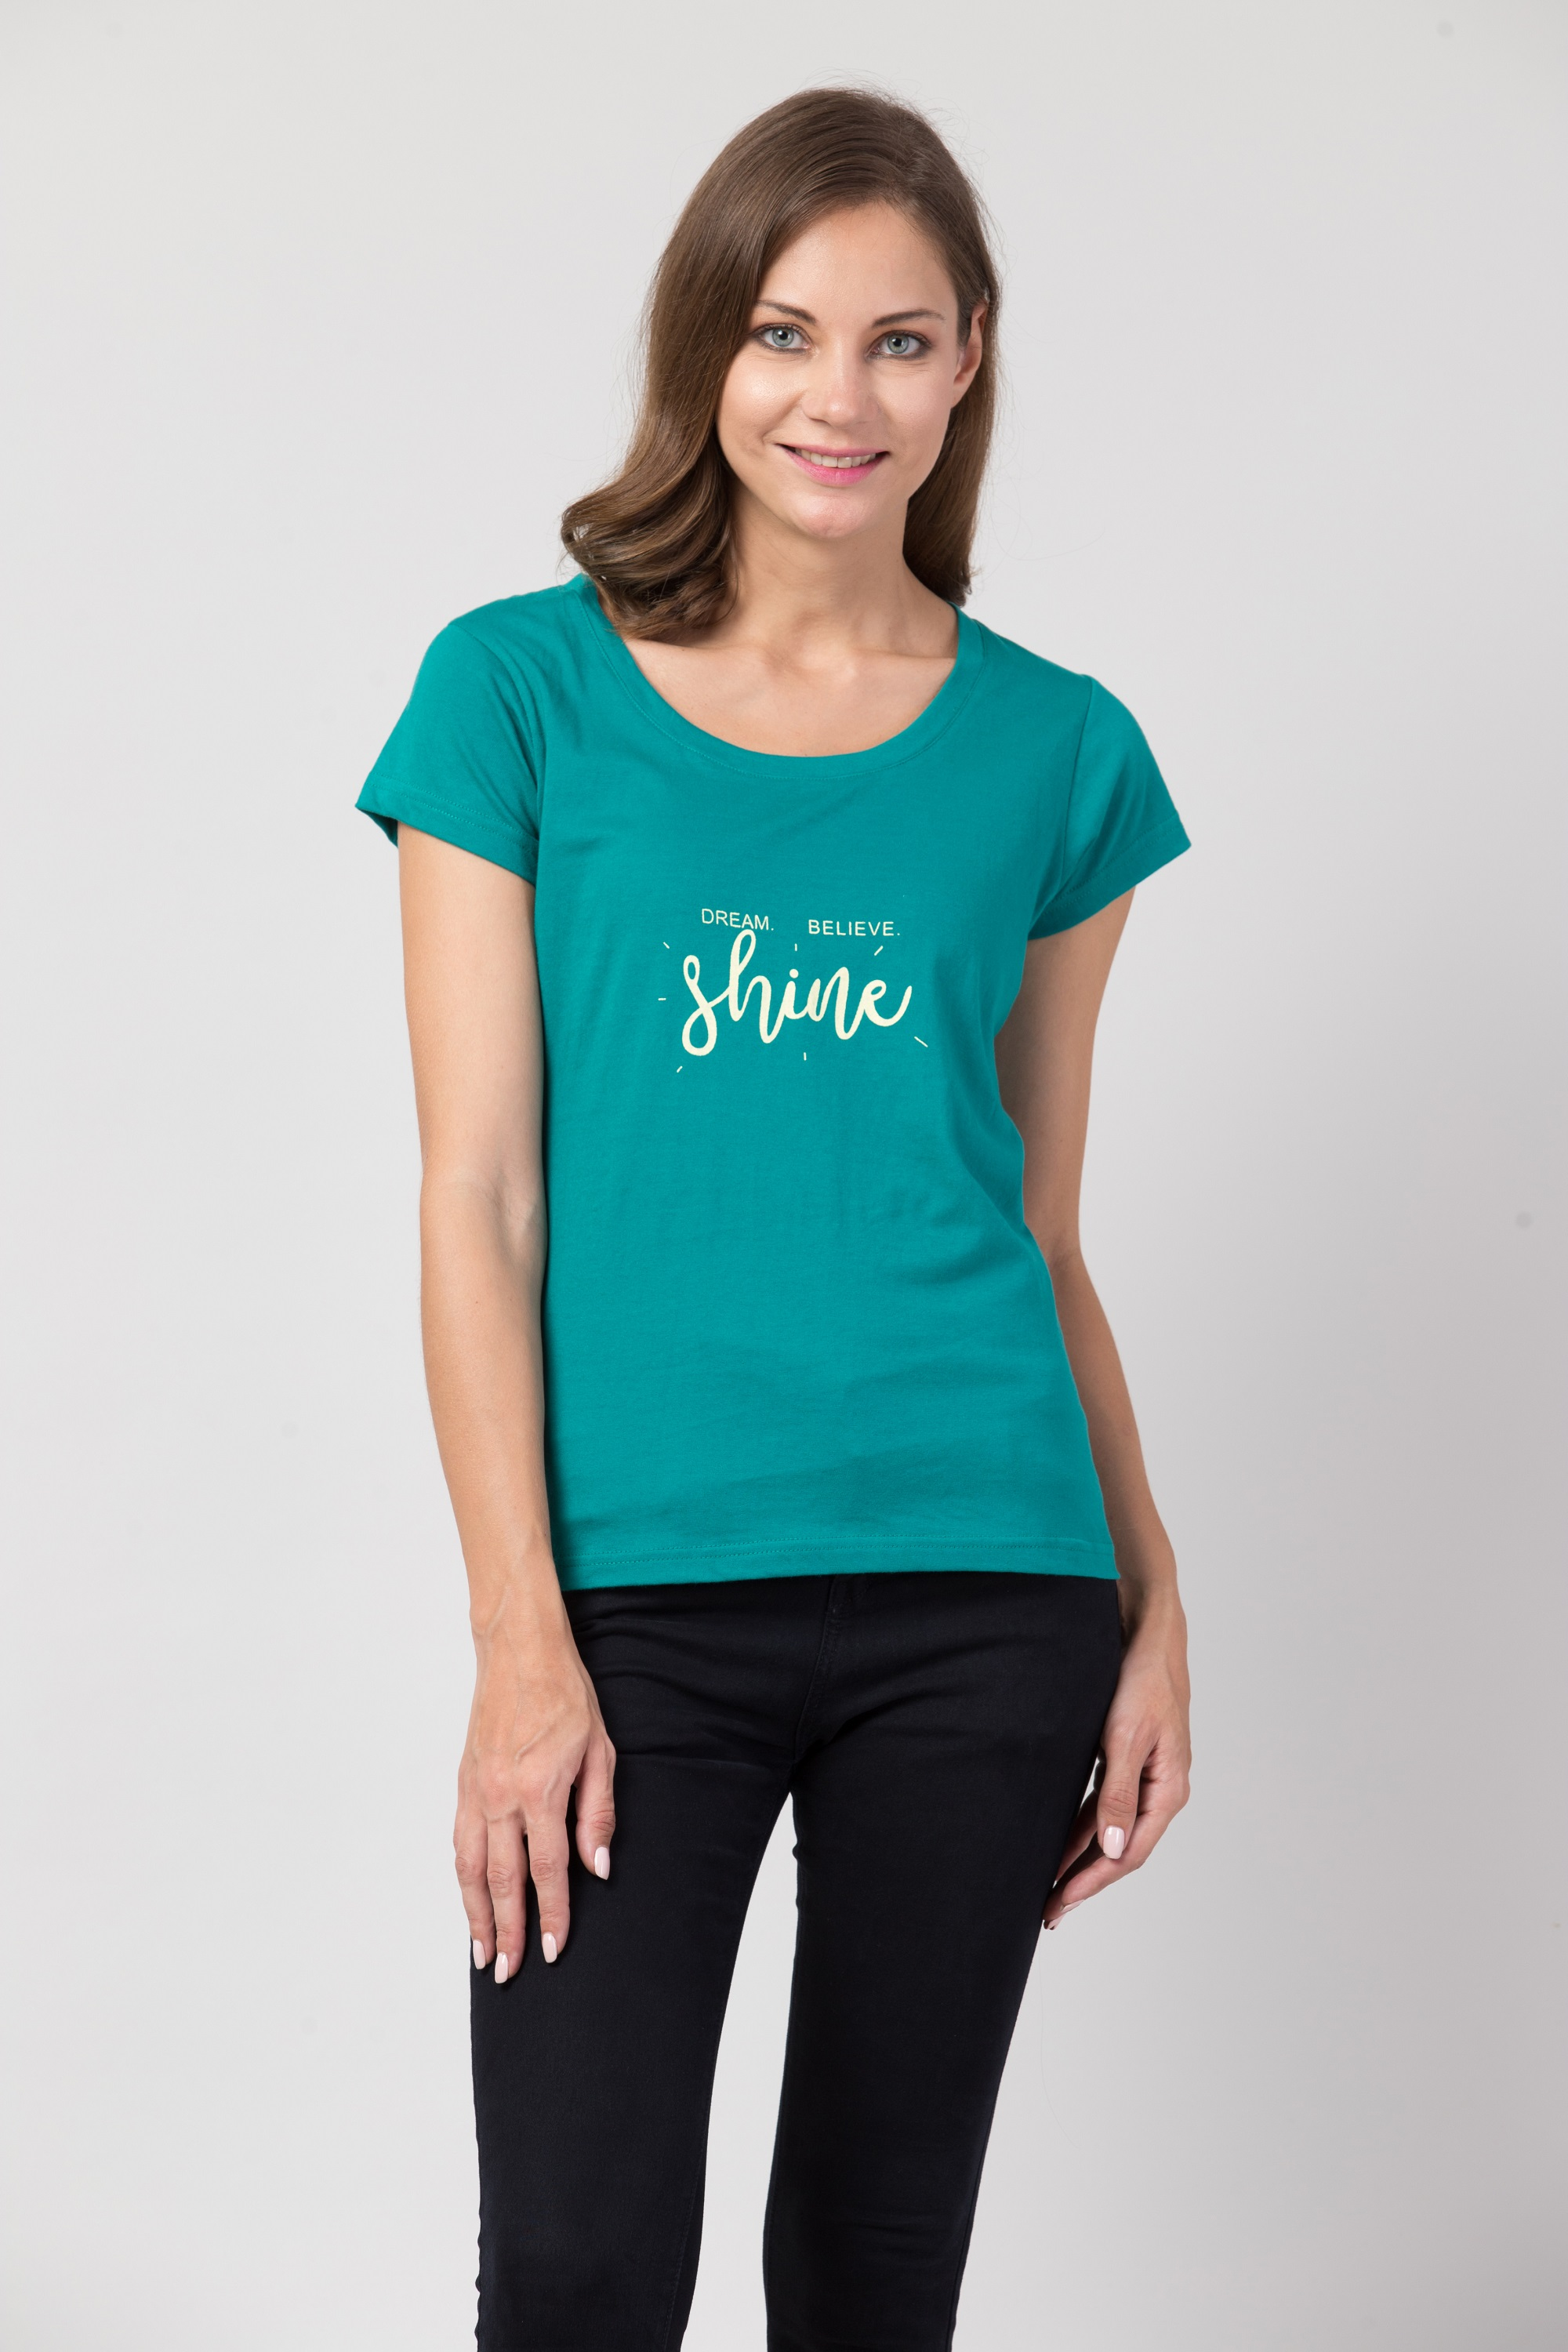 Folle Green Tshirt With Motivational Quote